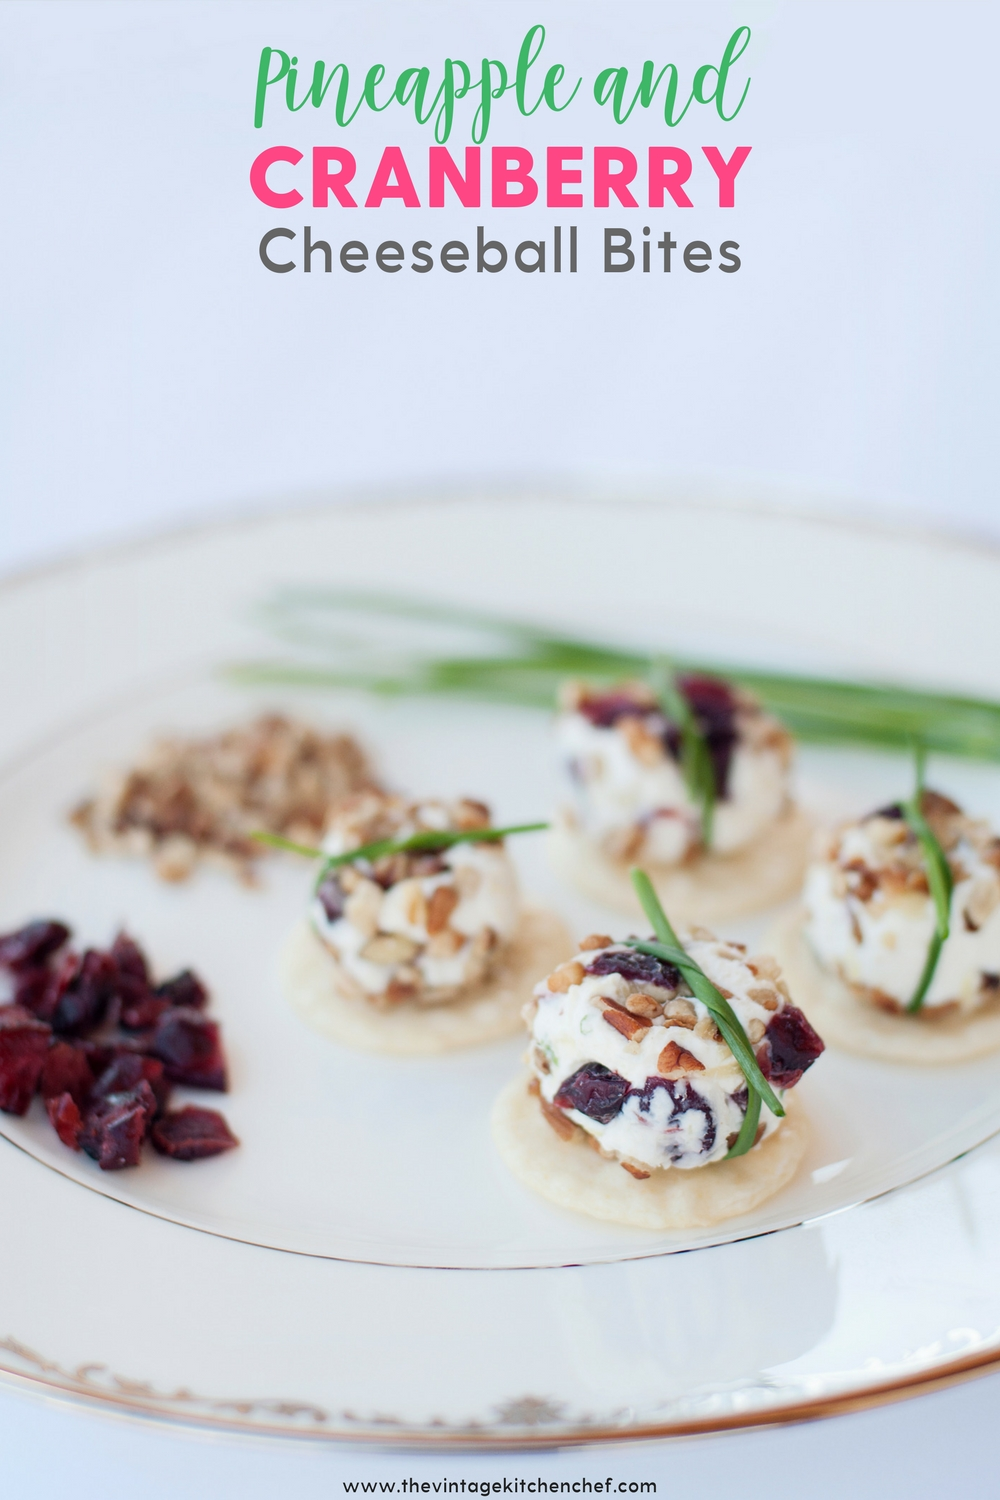 A bit of sweet with a touch of savory mini cheeseballs bites are all wrapped up and ready for your next party! Easy, cute and delicious!